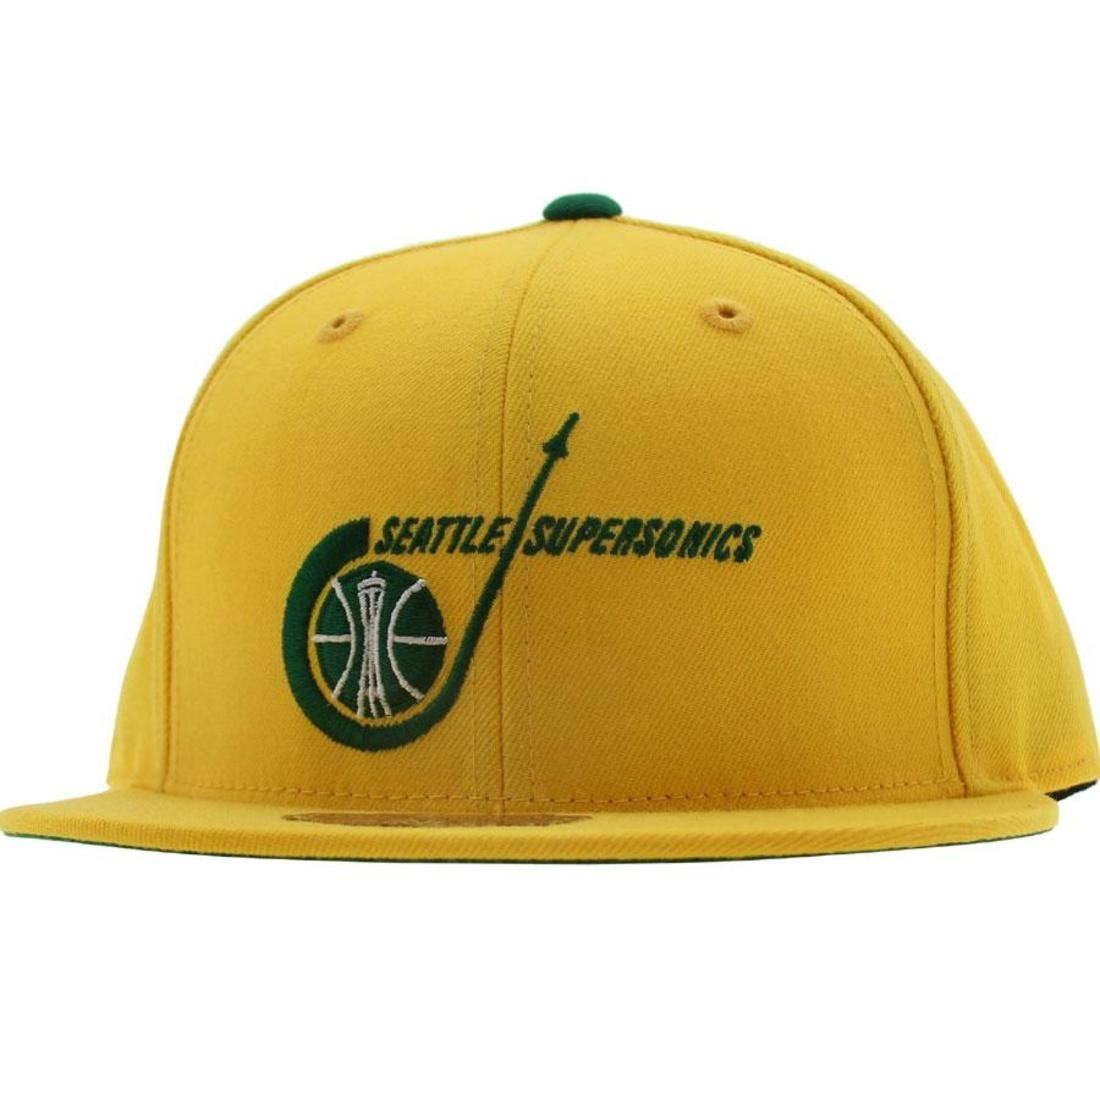 Mitchell And Ness Seattle Supersonics Alternate Fitted Cap (yellow)